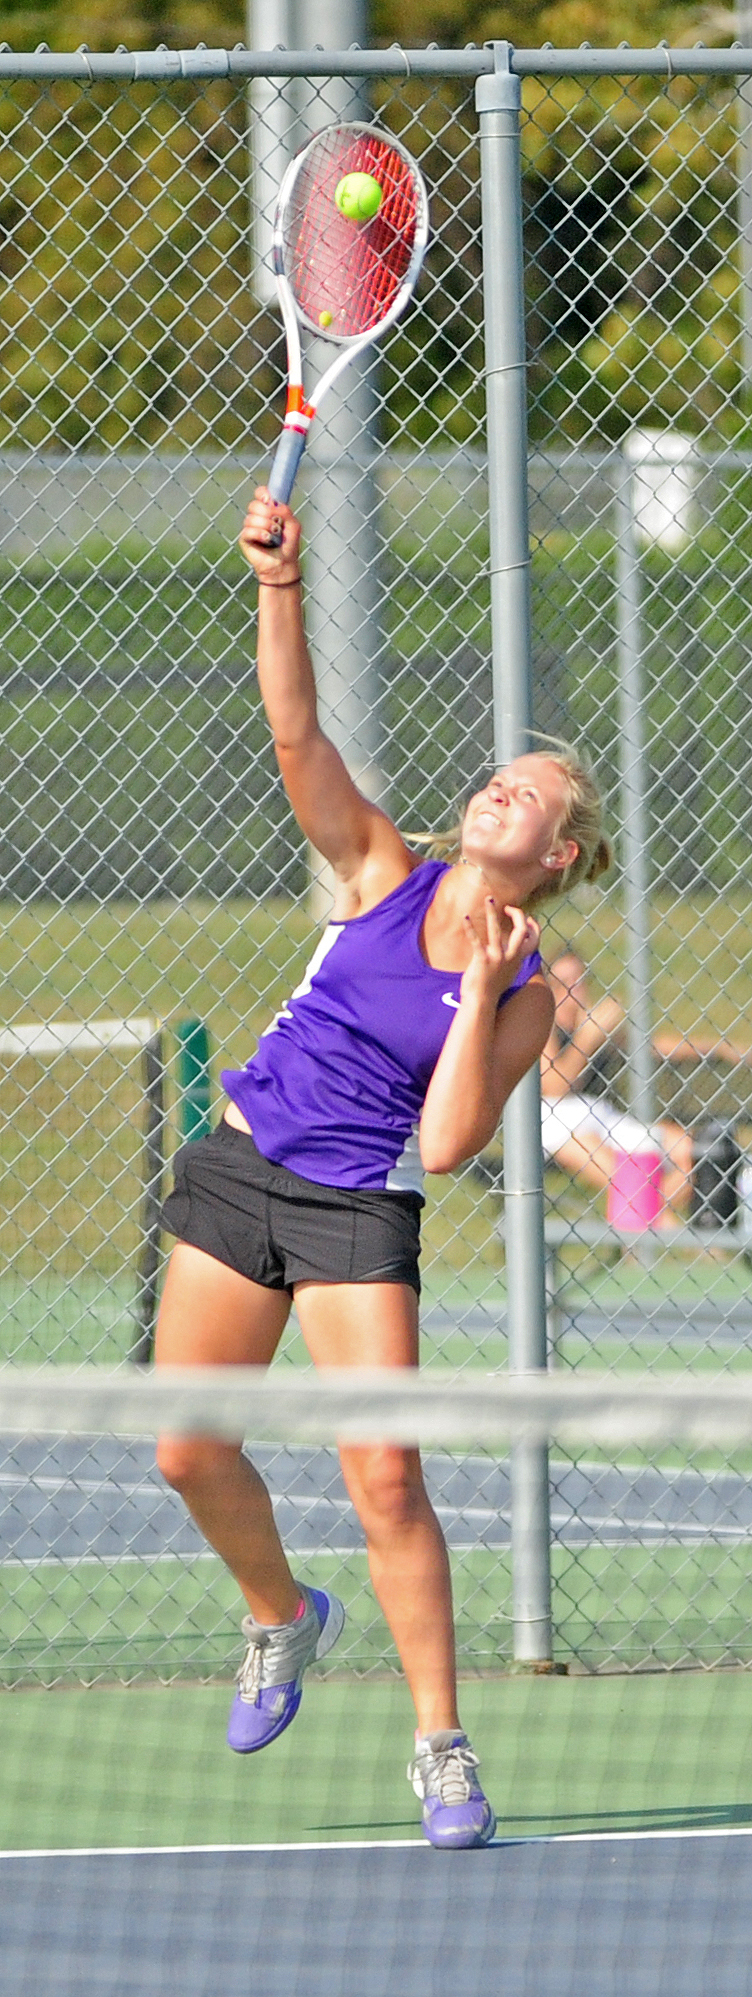 NICK INGRAM/Citizen photo Park Hill South's Chloe Norris hits a serve during the No. 2 singles match against Park Hill on Thursday, Sept. 14 at Park Hill South High School in Riverside, Mo.